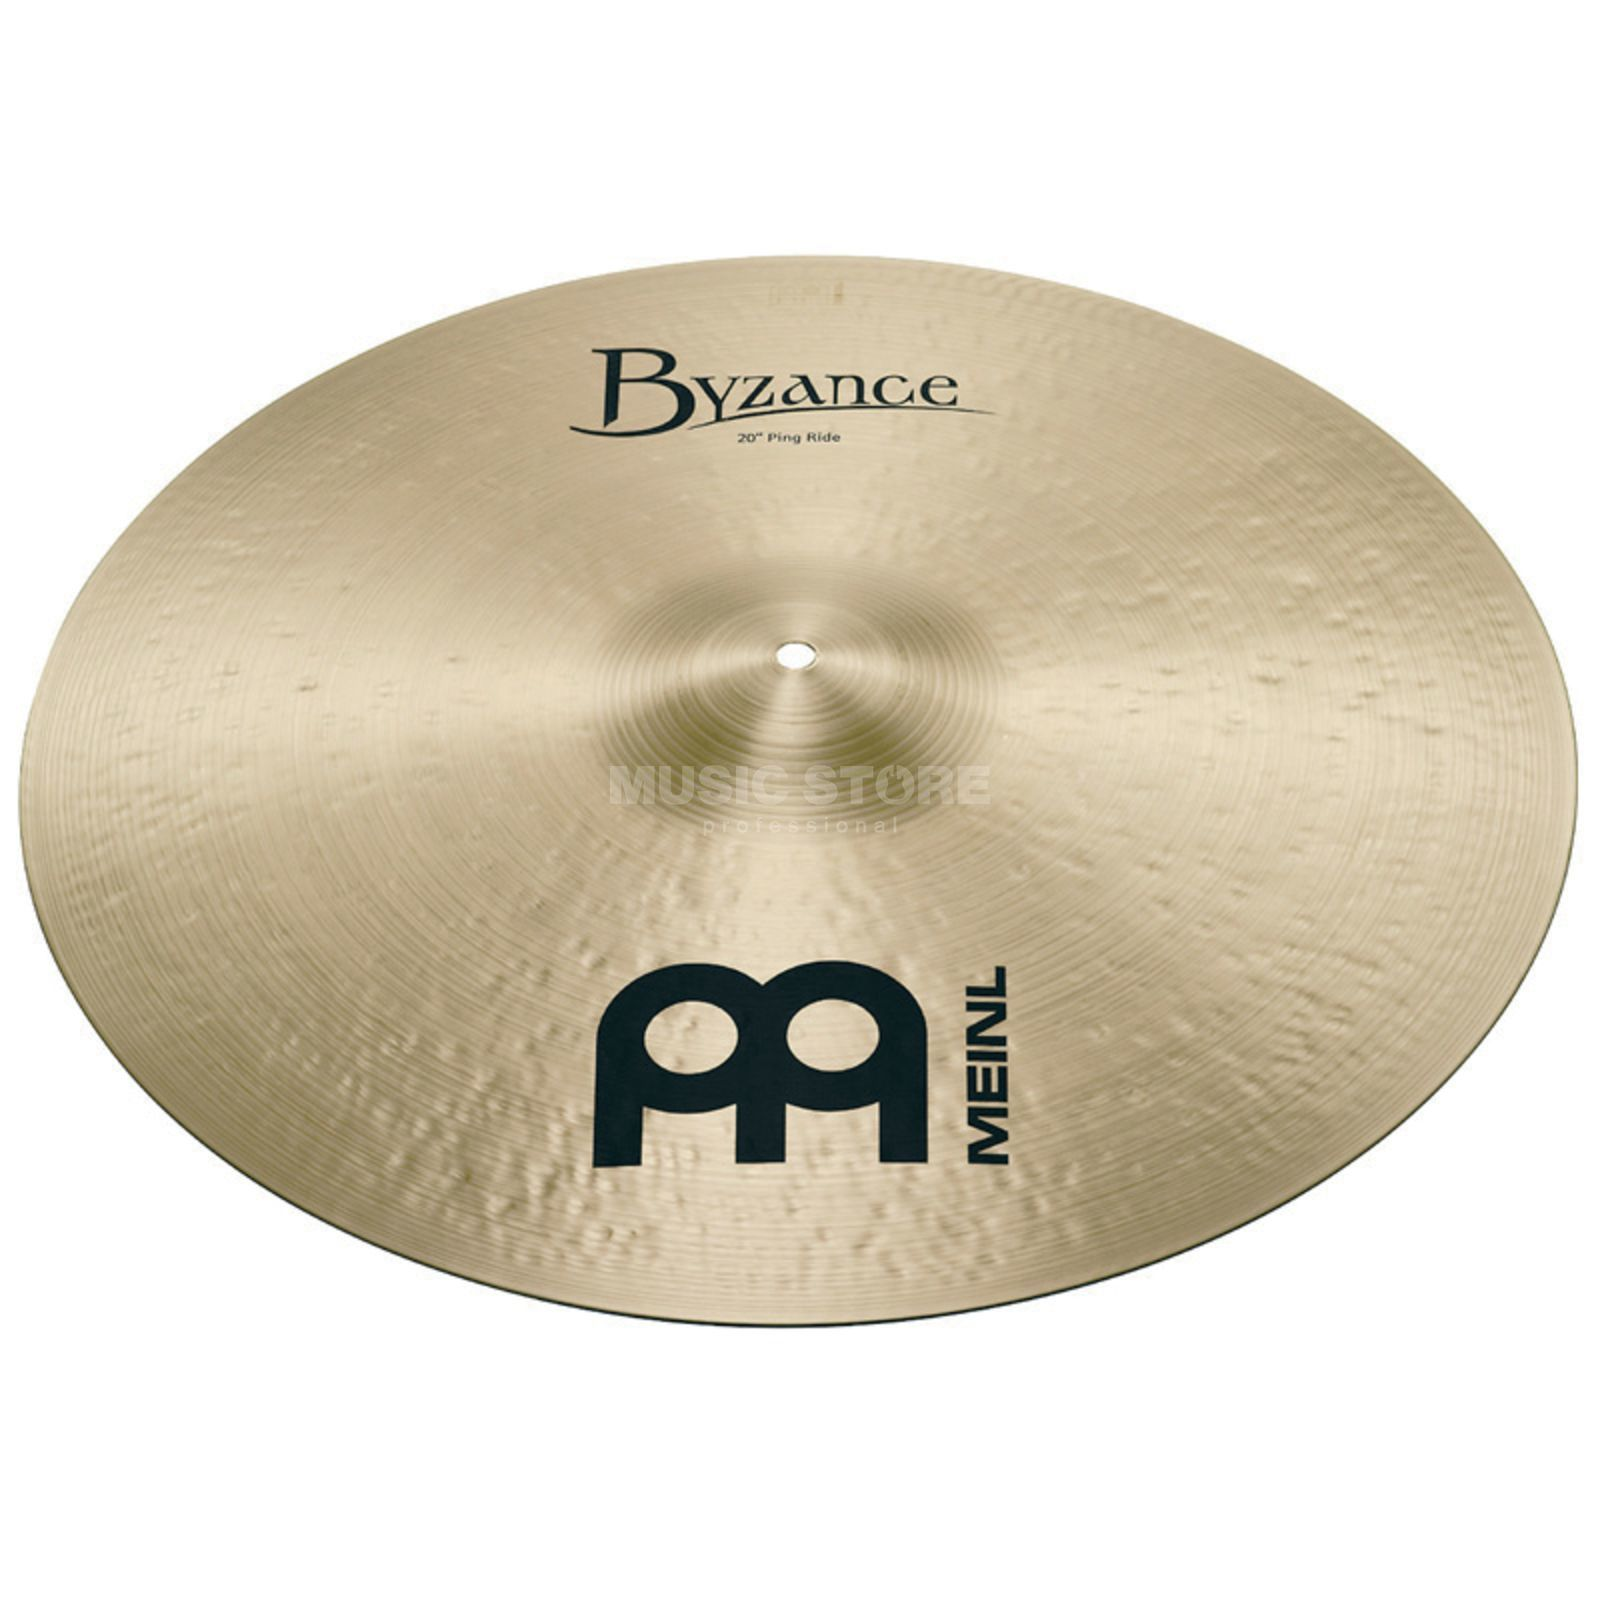 "Meinl Byzance Ping Ride 20"" B20PR, B-Stock Product Image"